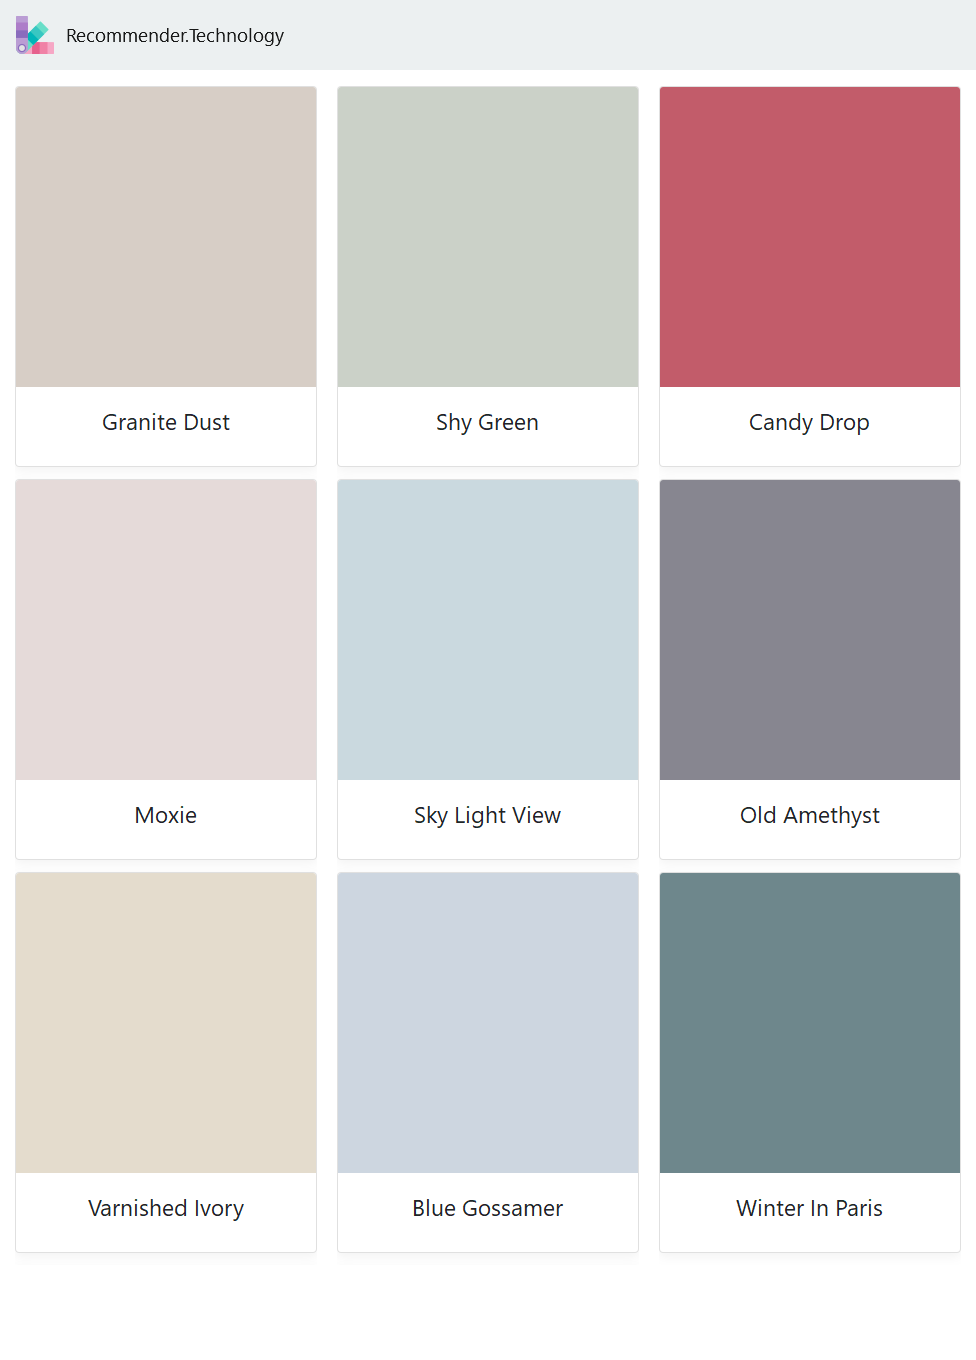 Granite Dust Moxie Varnished Ivory Shy Green Sky Light View Blue Gossamer Candy Drop Old Amethyst Win Behr Colors Behr Color Palettes Behr Paint Colors